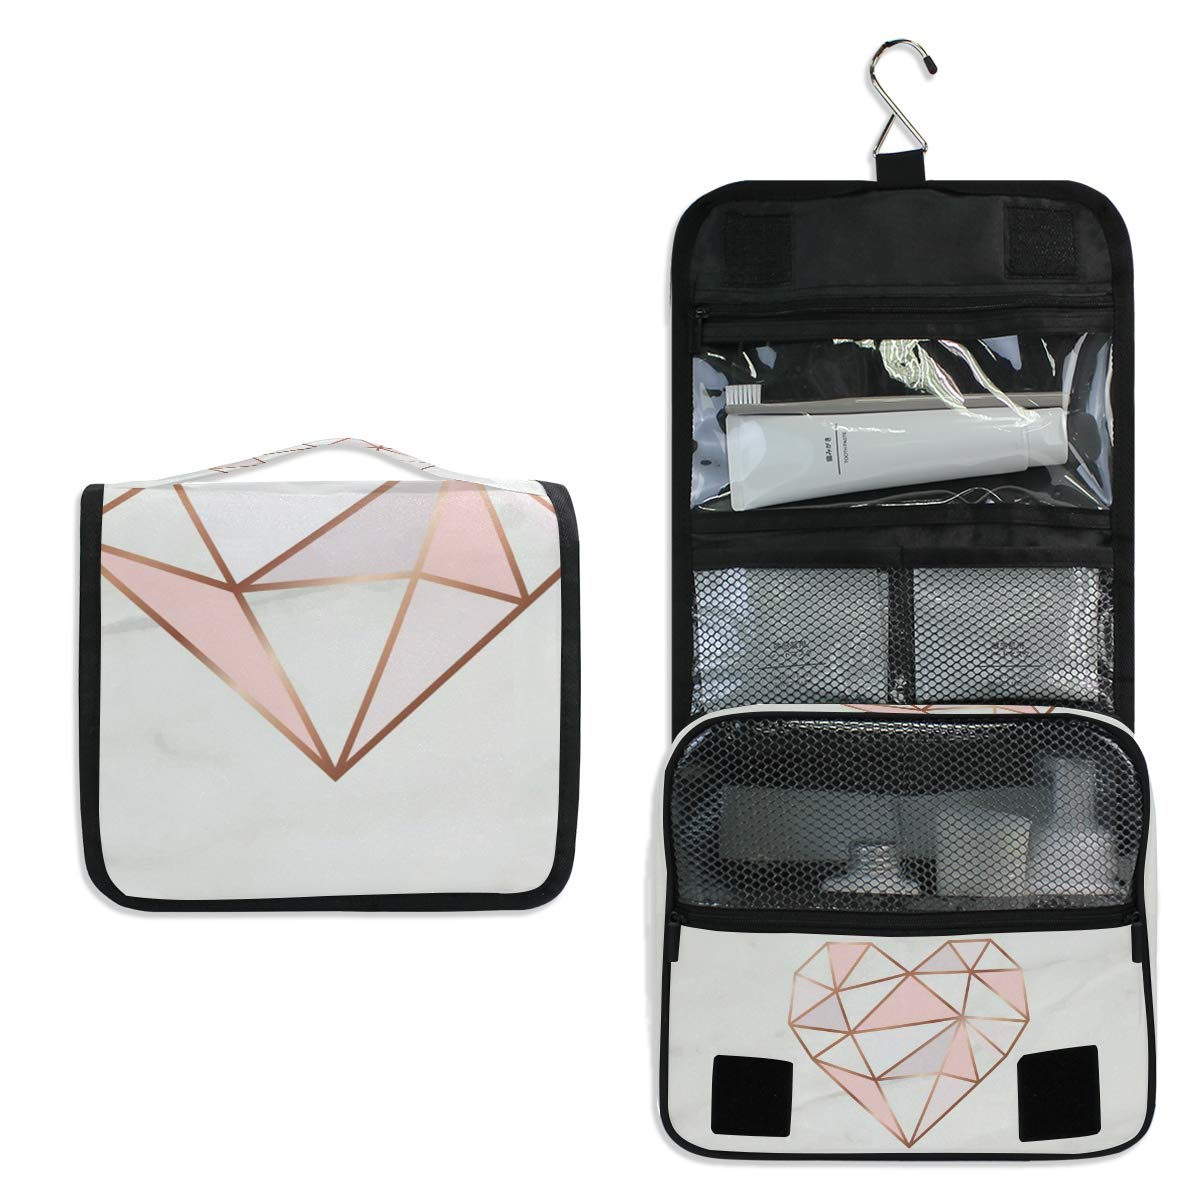 ALAZA White Marble Rose Gold Heart Geometric Travel Toiletry Bag Hanging Multifunction Cosmetic Case Portable Makeup Pouch Organizer with Hook